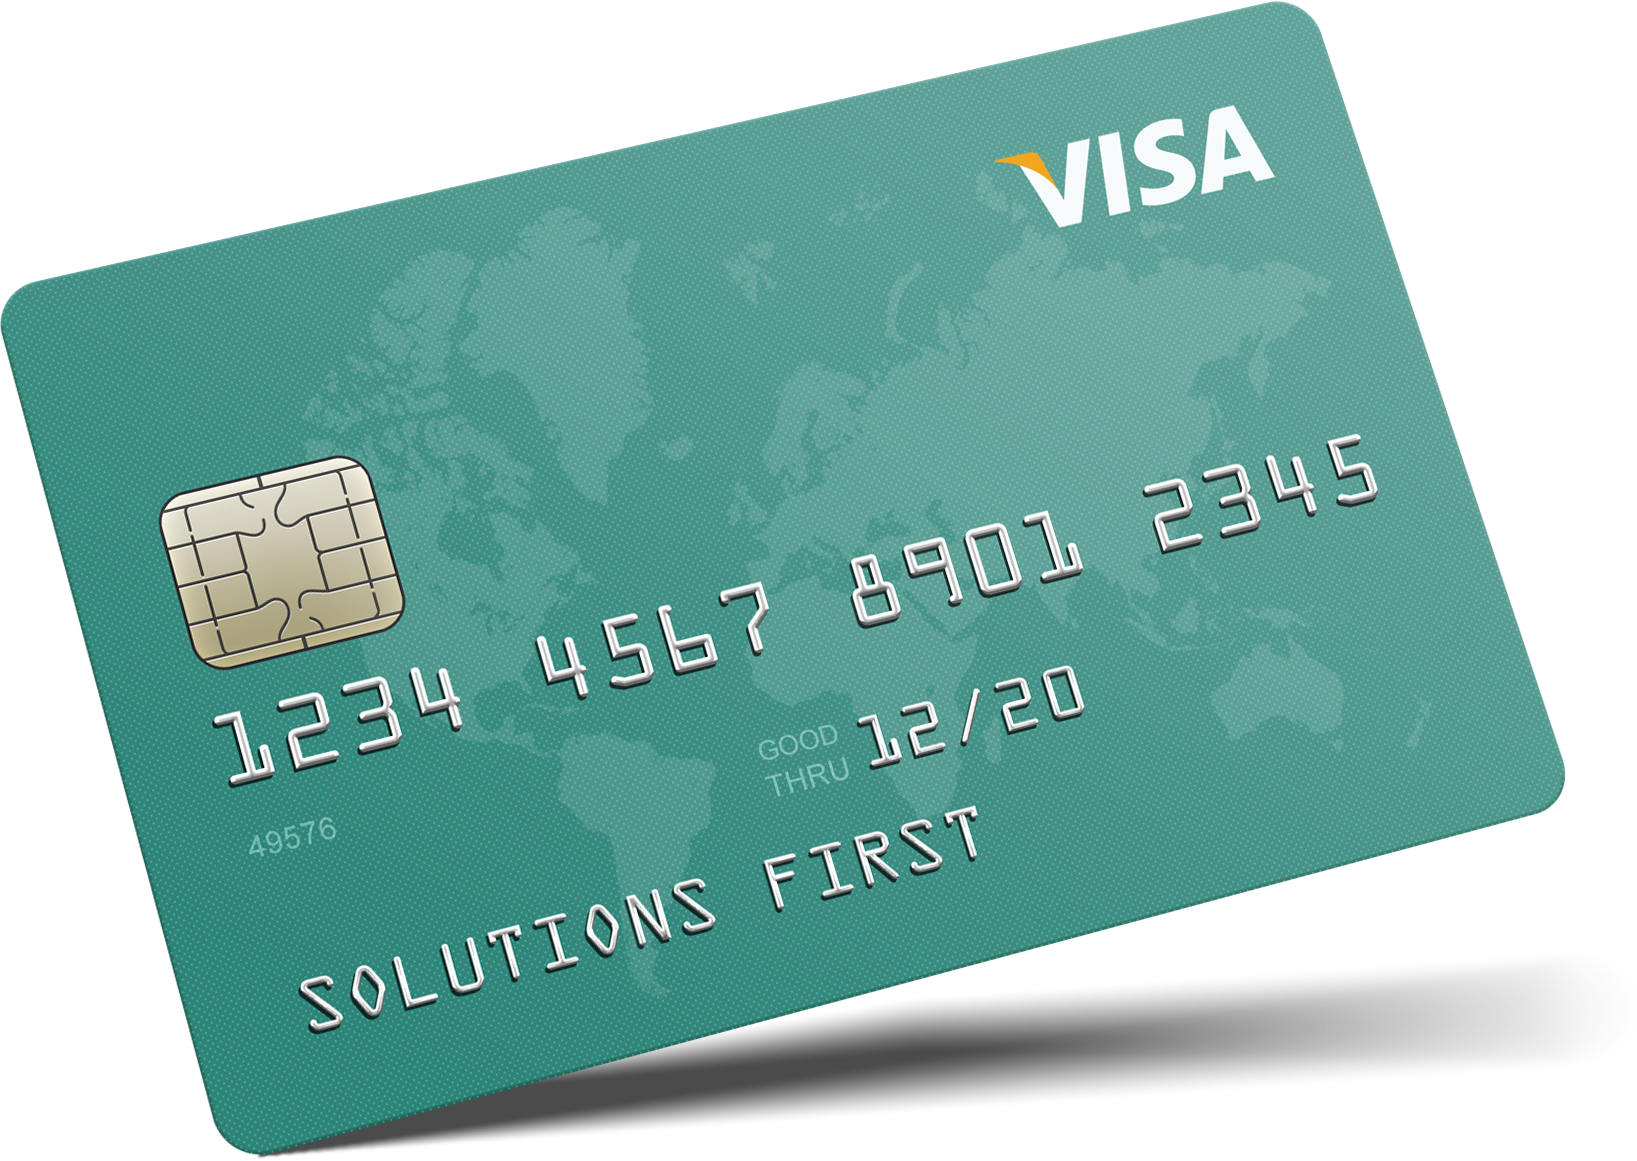 Apply for a Visa Credit Card with Solutions First Credit Union